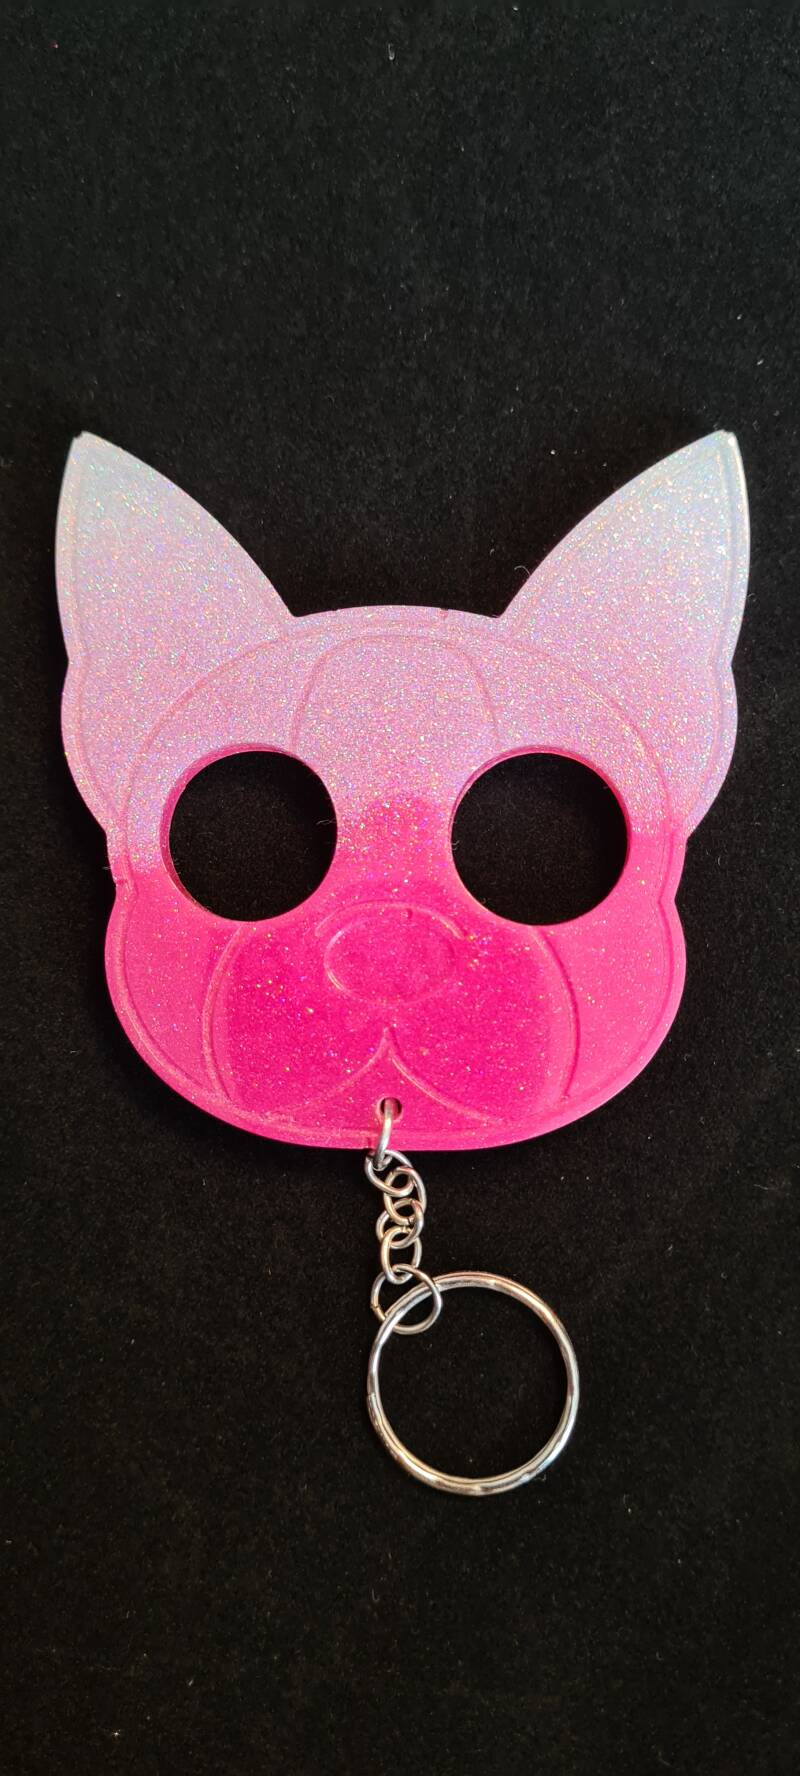 Doggy Keychain Pink White Holographic Glitter